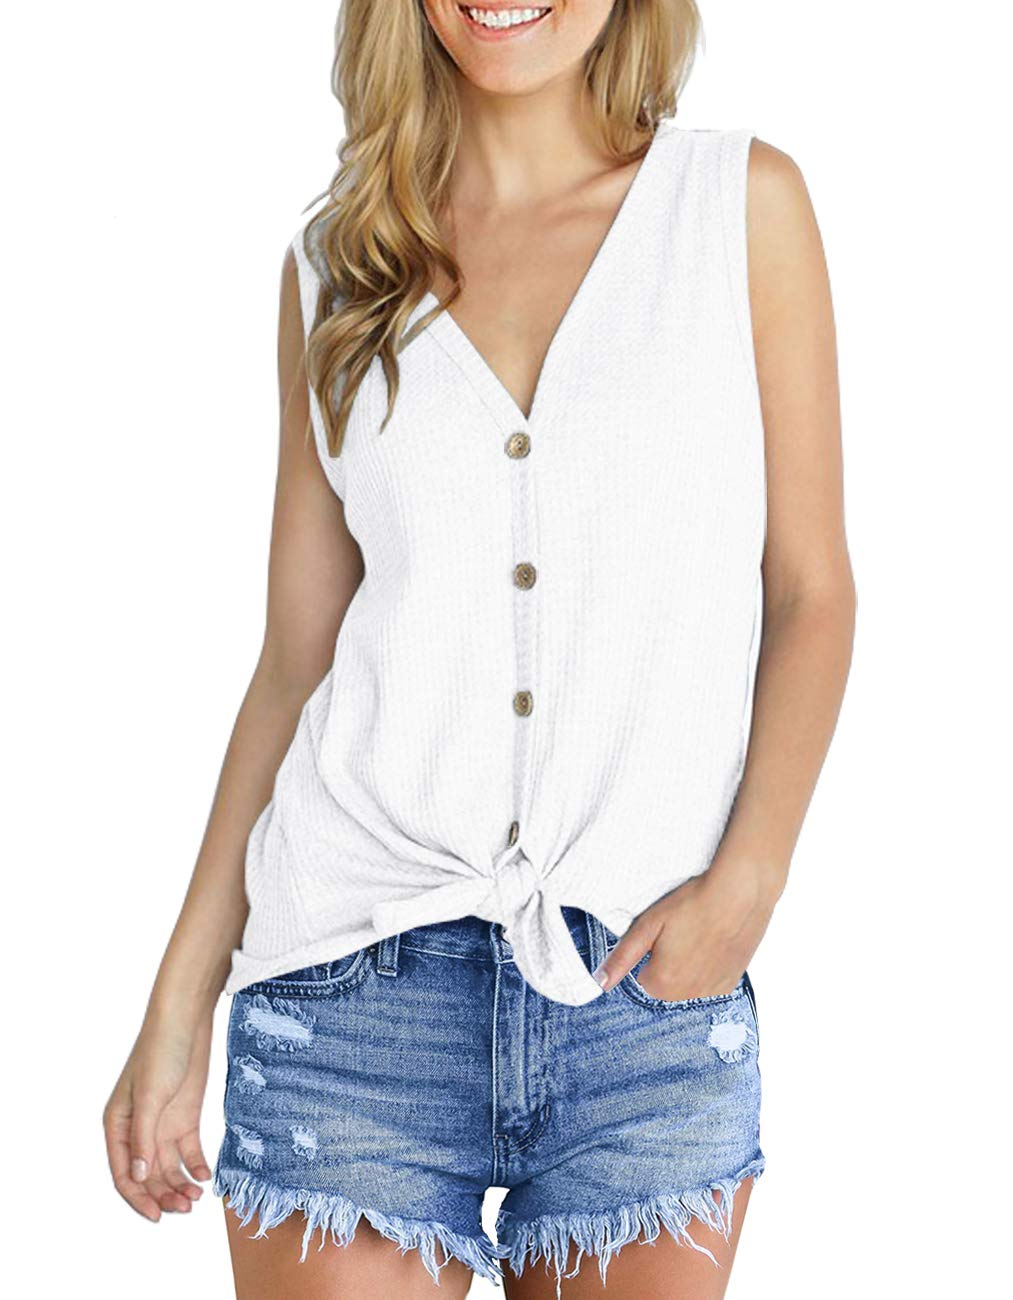 IWOLLENCE Womens Loose Henley Blouse Sleeveless Button Down T Shirts Tie Front Knot Tops White L